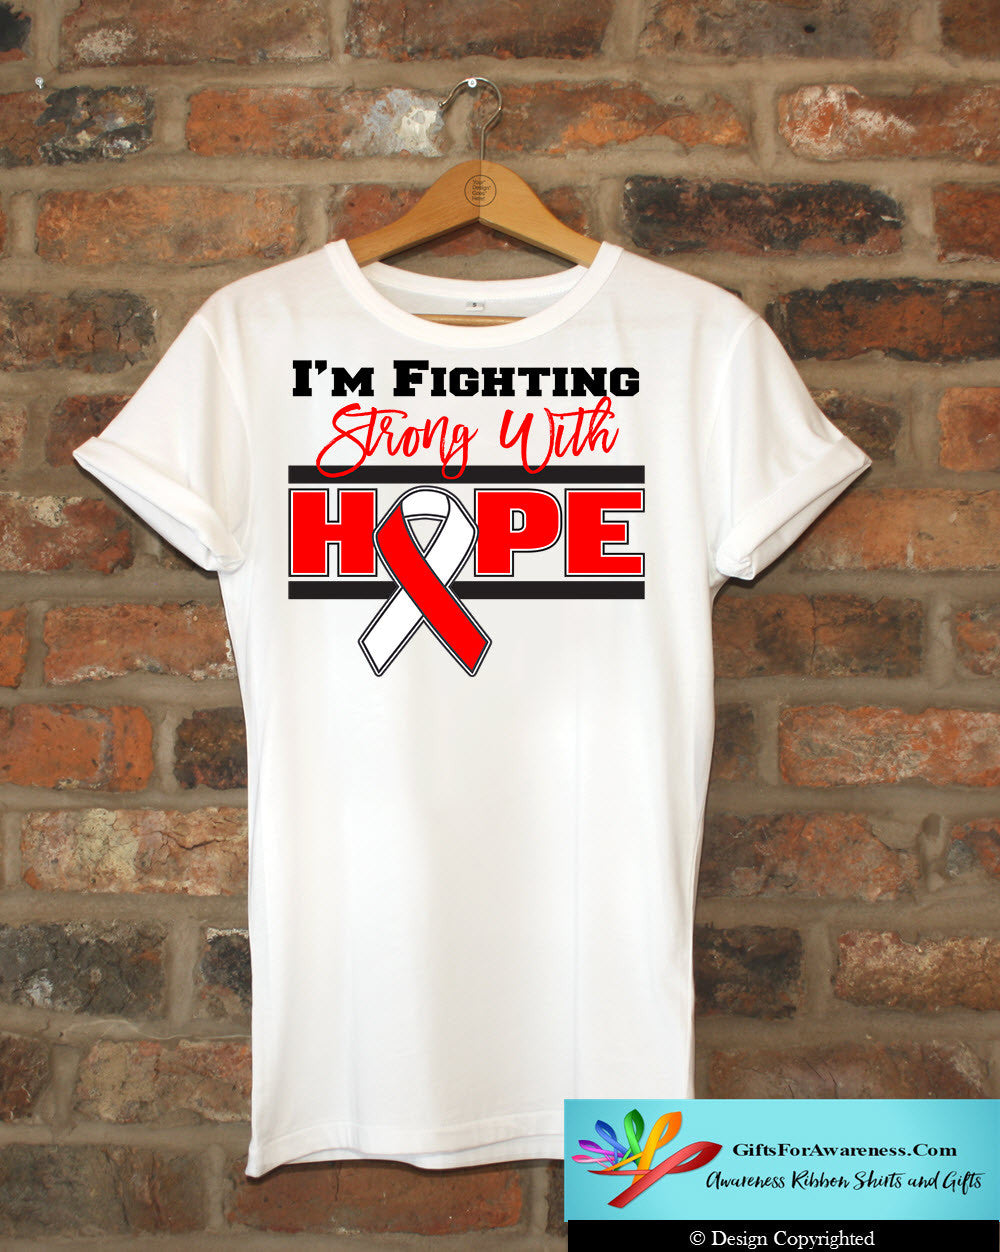 Oral Cancer I'm Fighting Strong With Hope Shirts - GiftsForAwareness